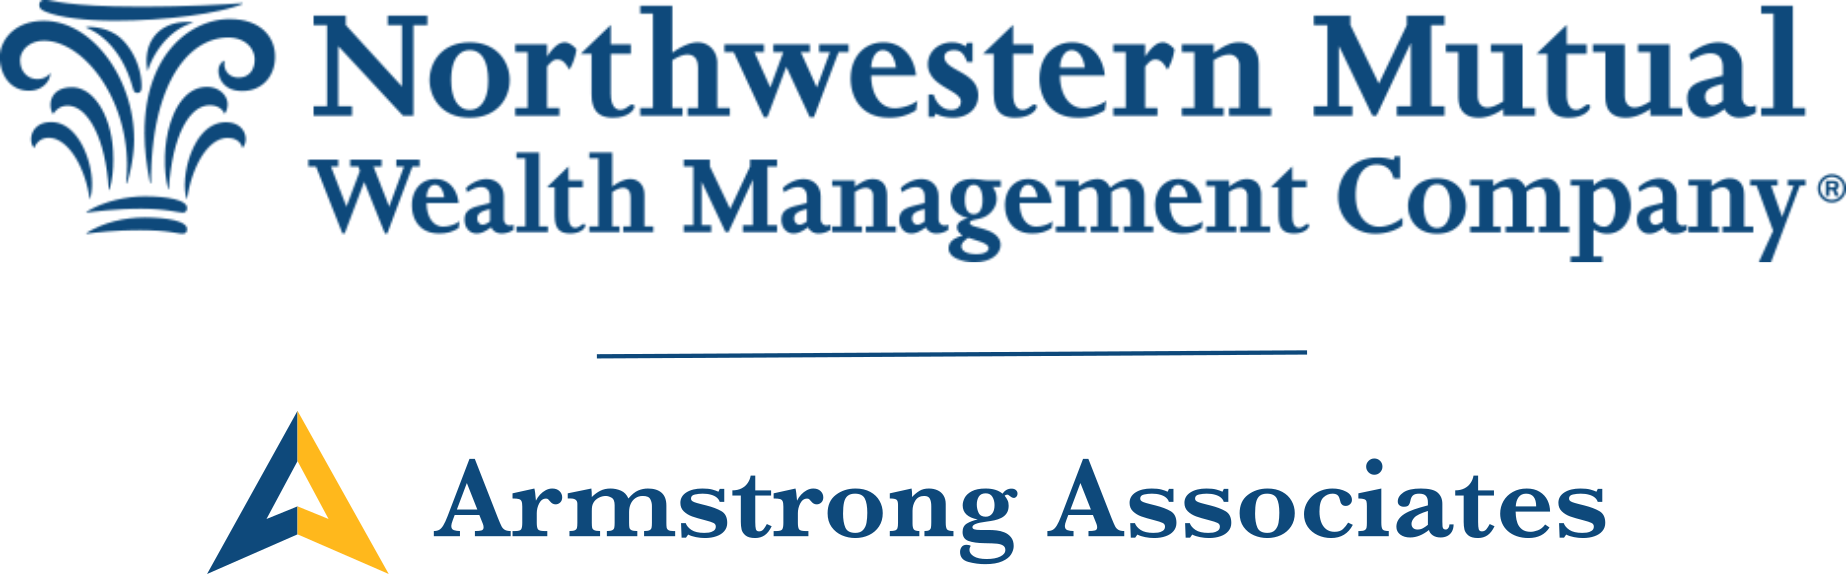 ArmstrongAssociates.NWM